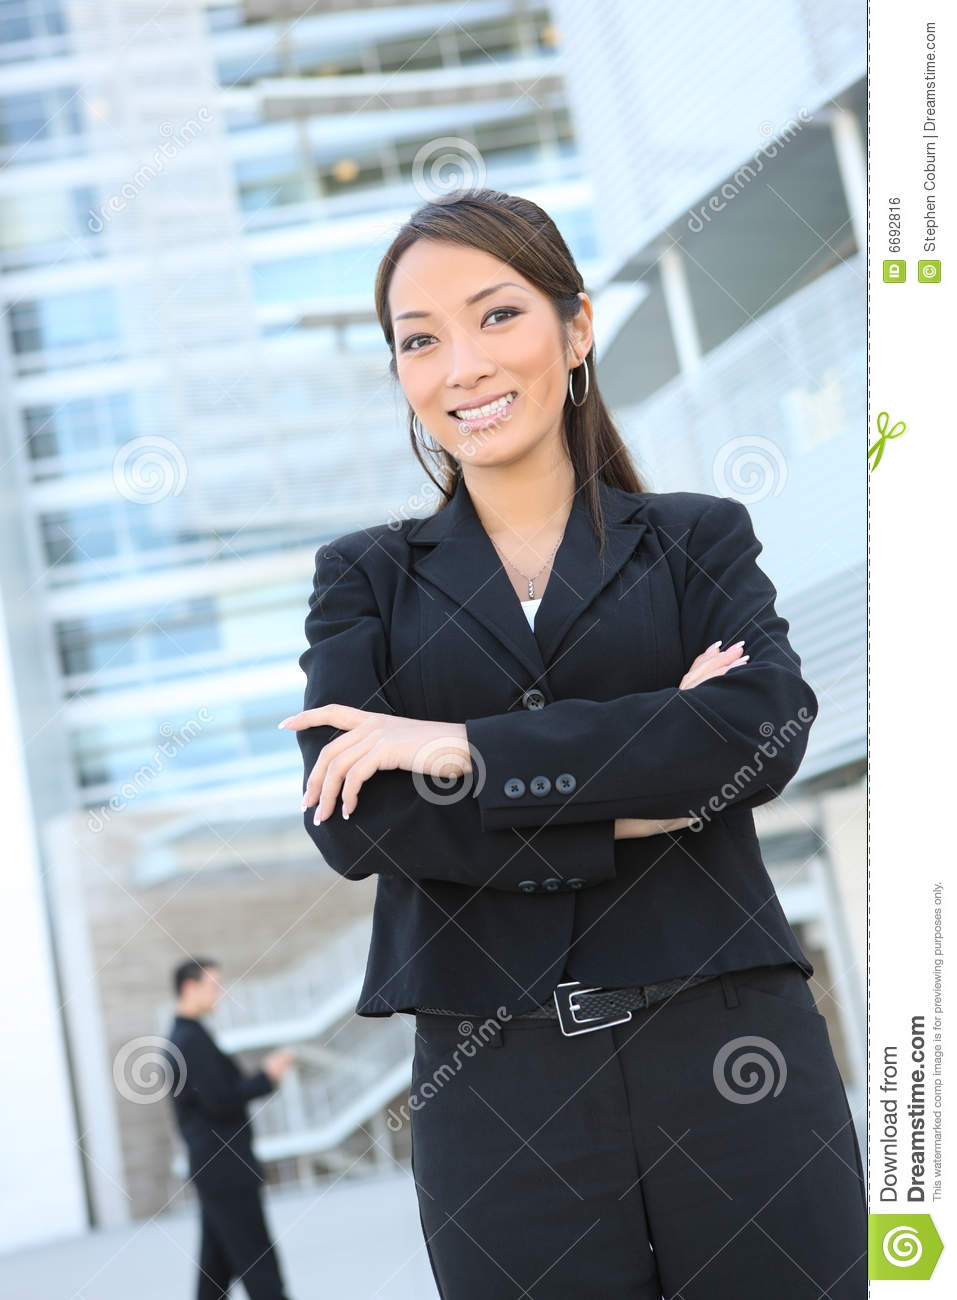 Stylish Hair Style Of Man Confident Asian Business Woman Stock Photo Image 6692816